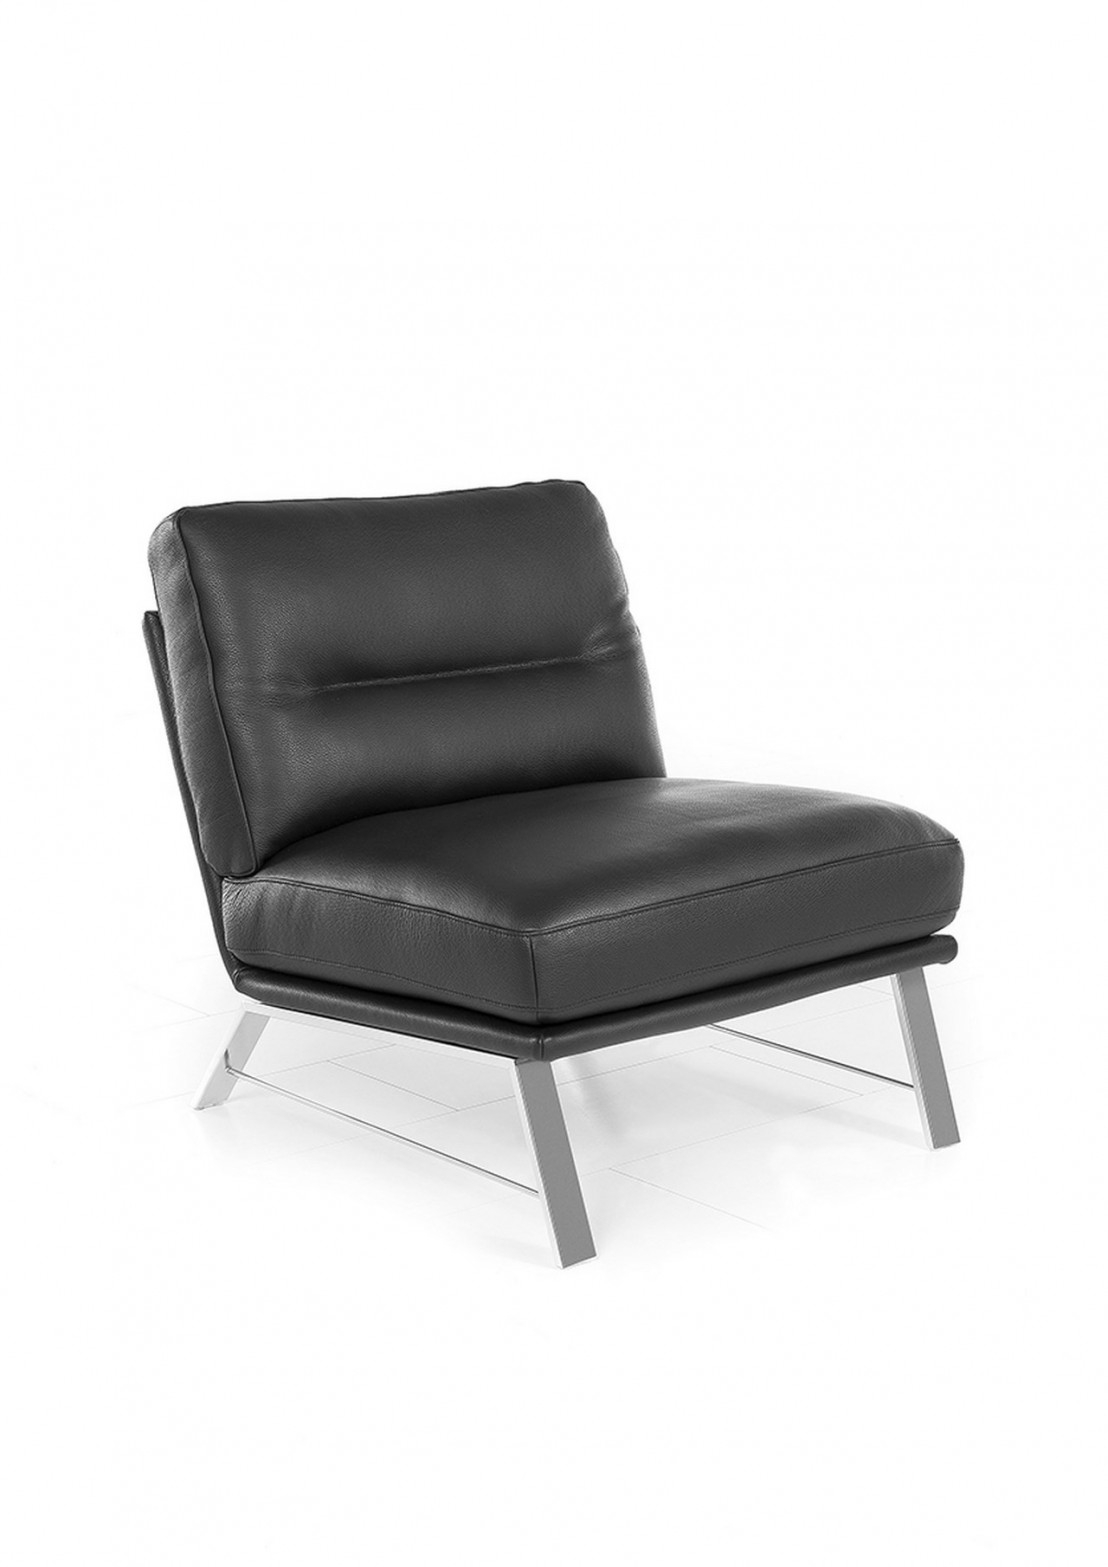 Fauteuil AM LOUNGY design en cuir sans accoudoir pact